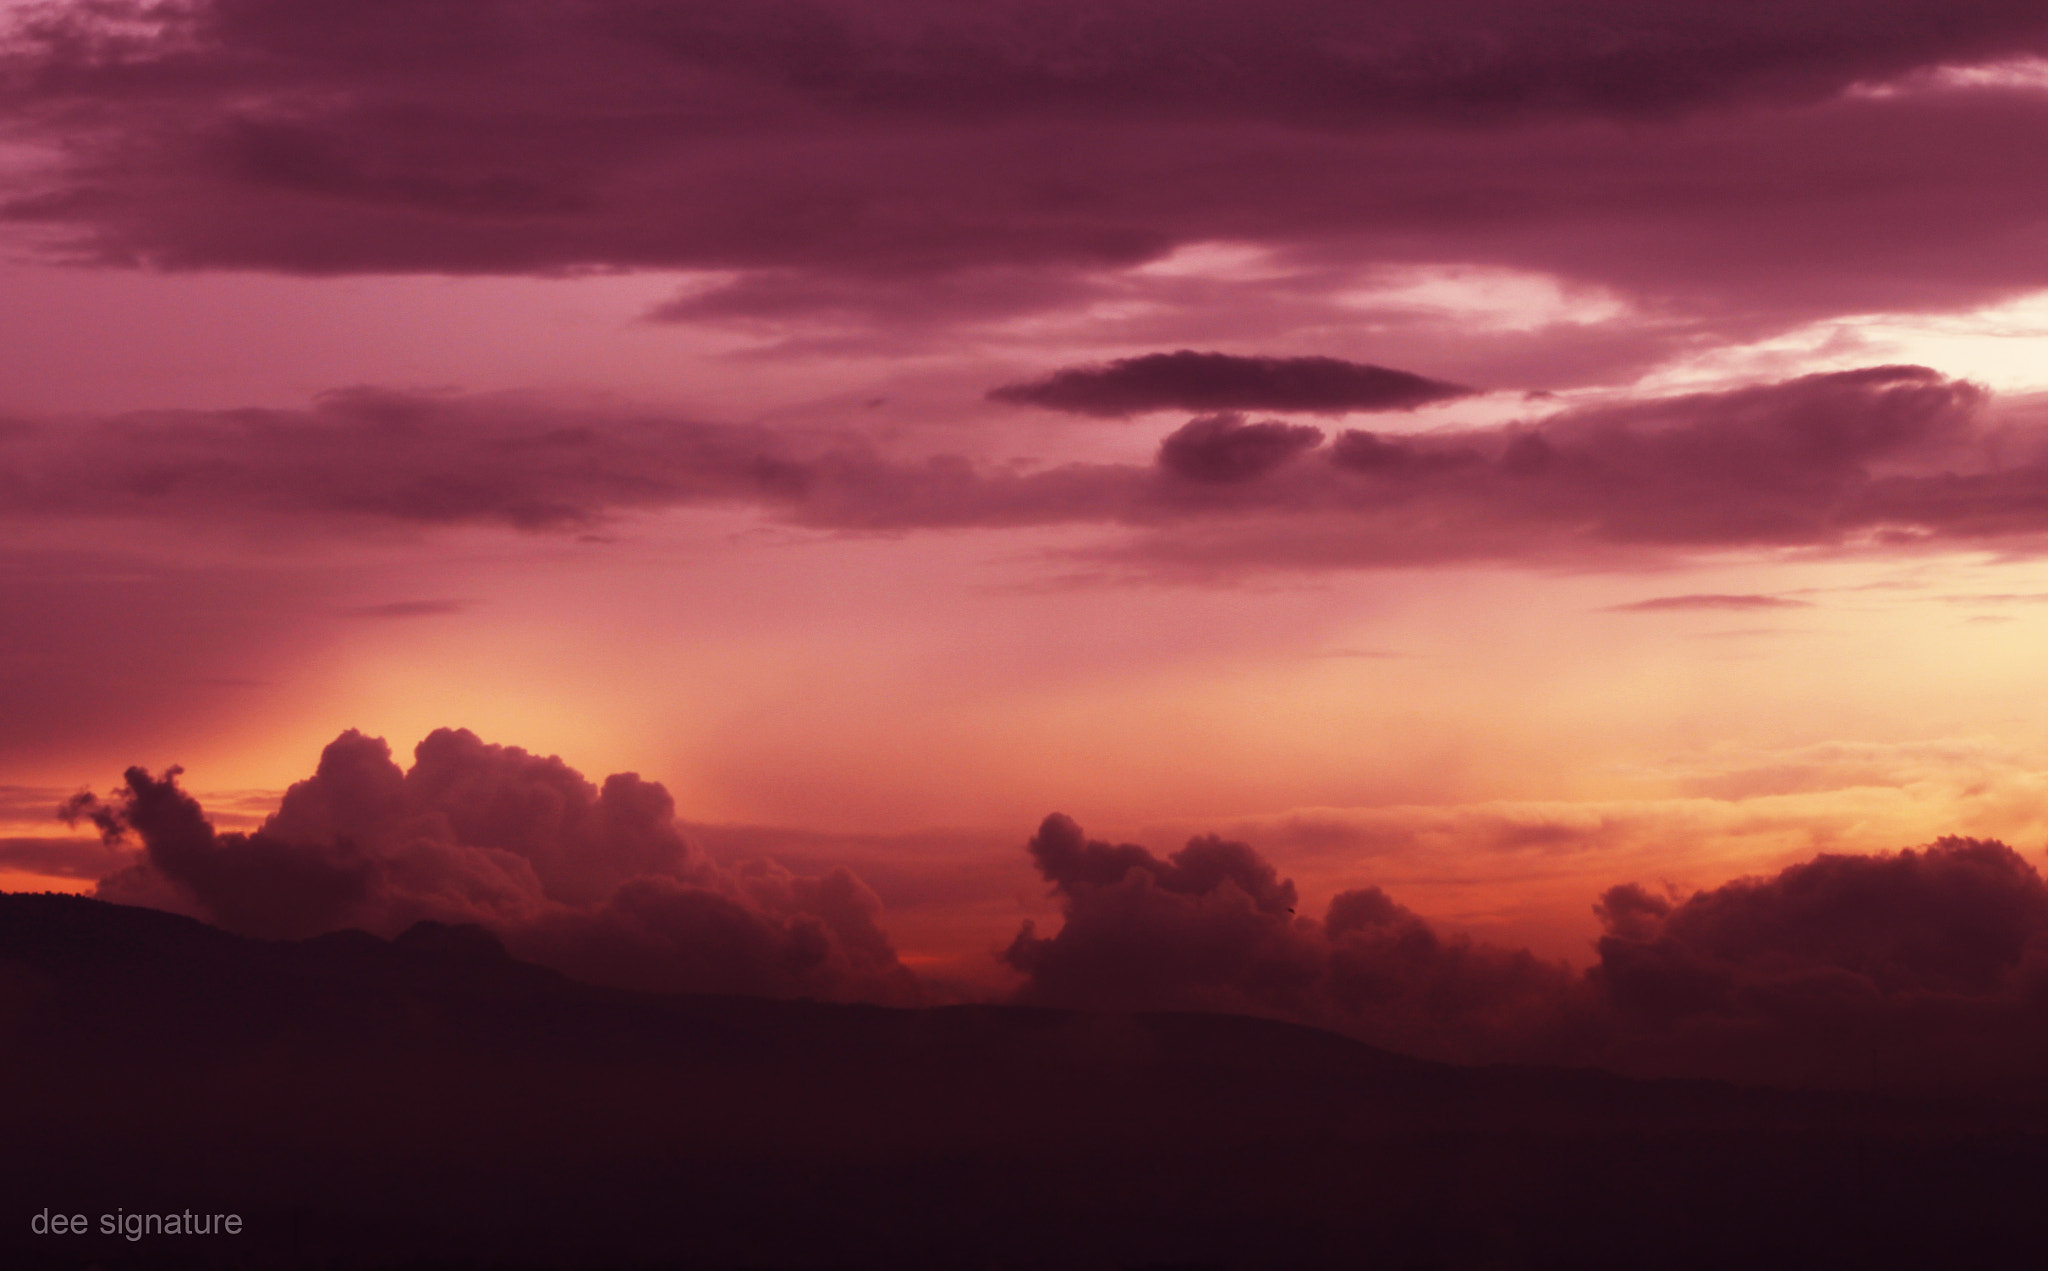 Photograph this is my sky by dee signature on 500px